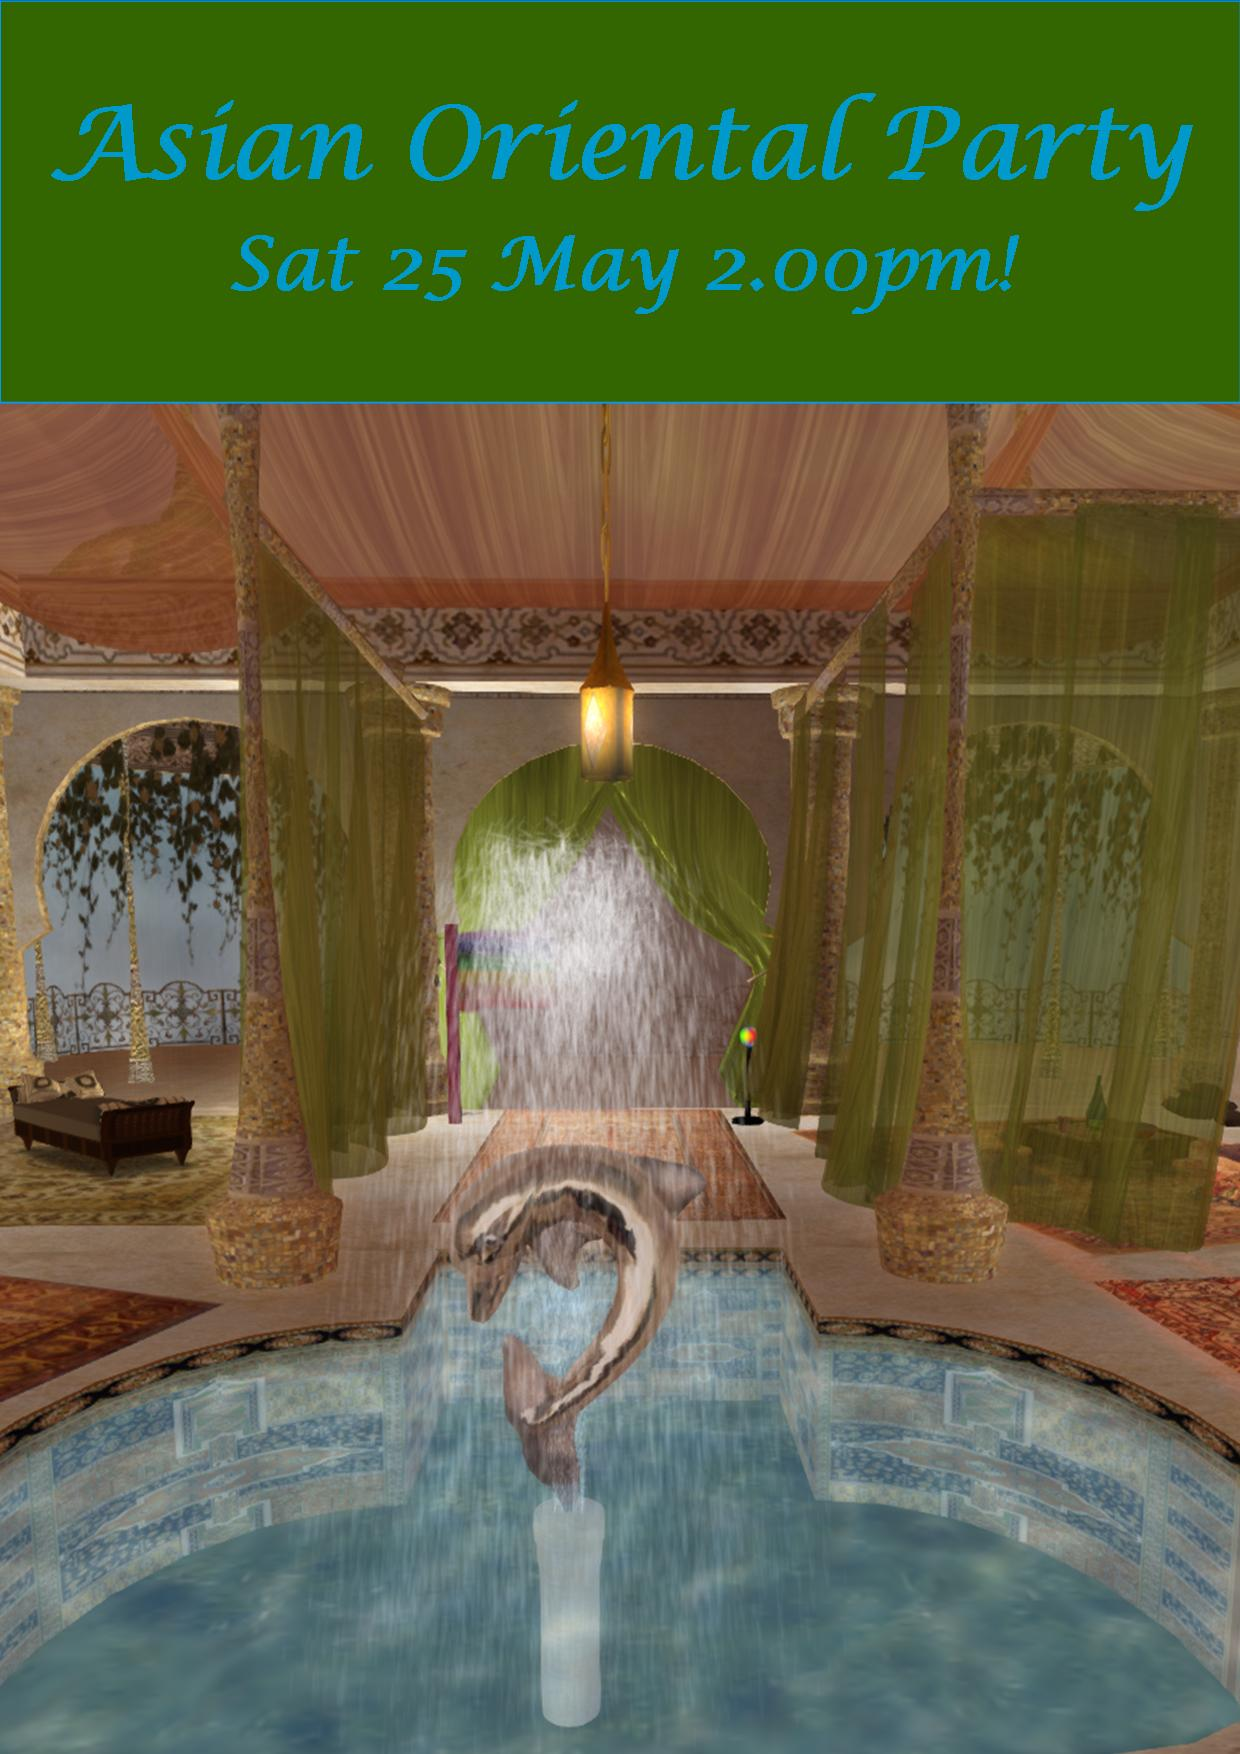 ASIAN ORIENTAL PARTY SAT 25 MAY 2.00PM!